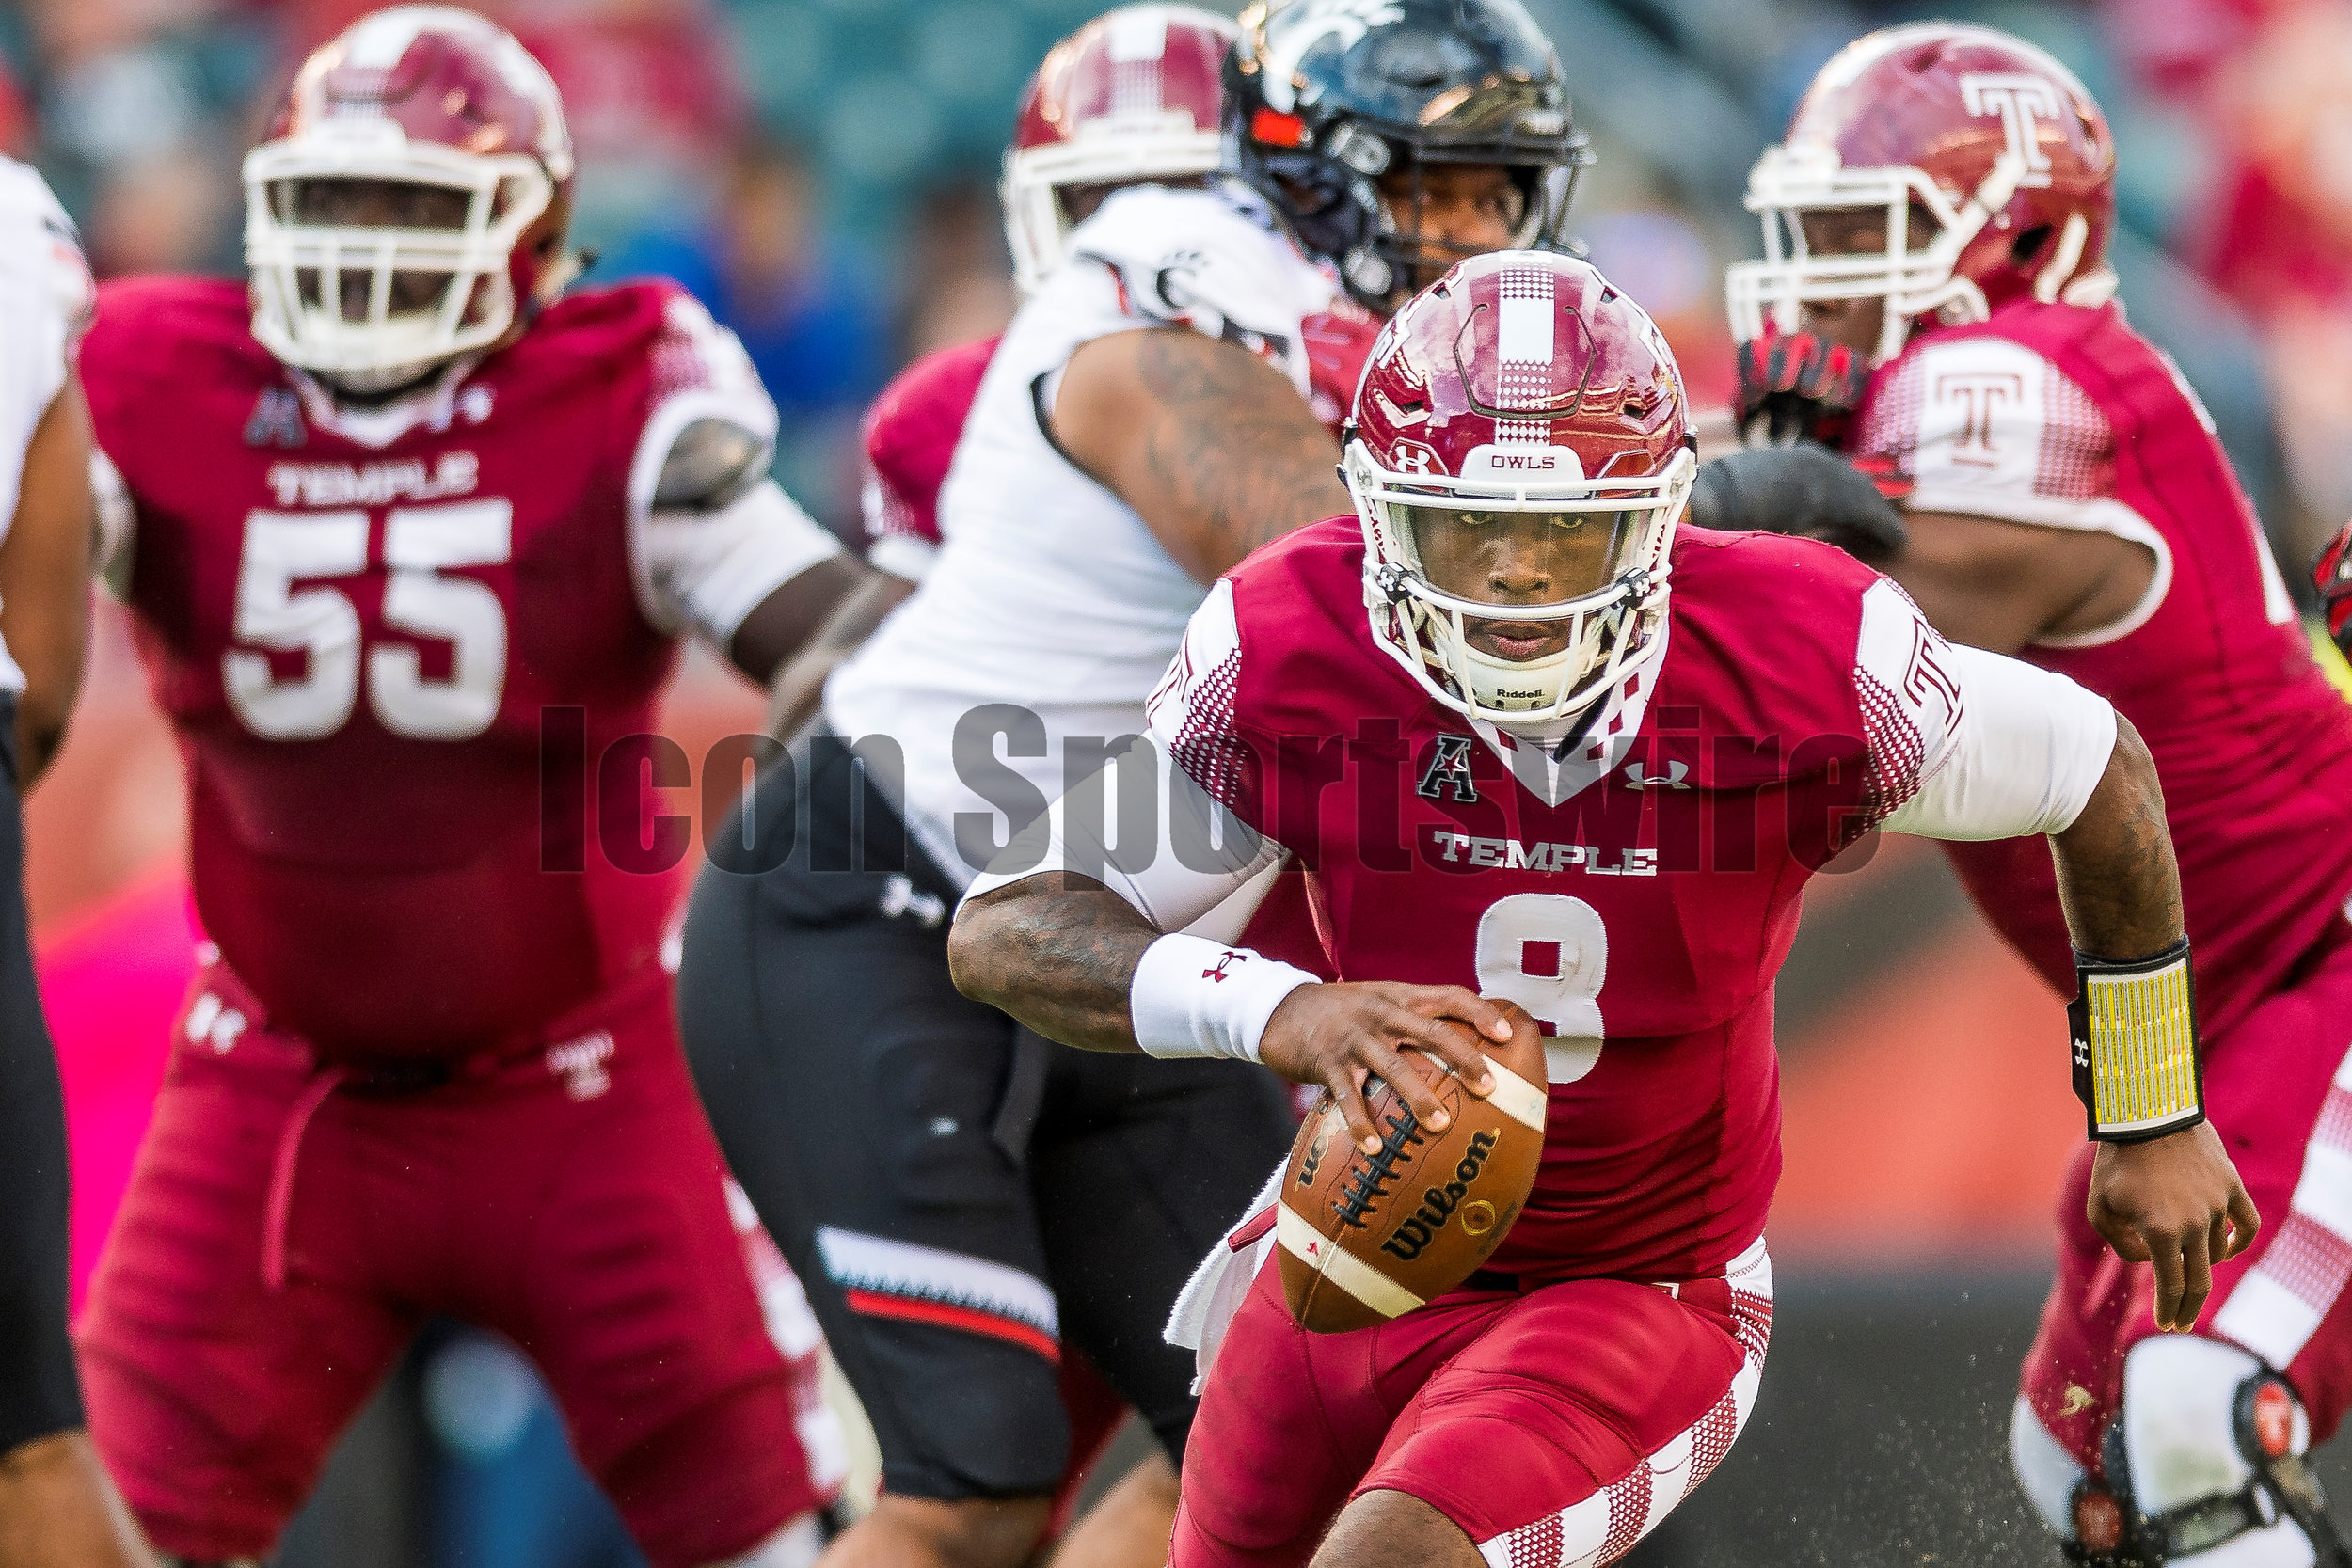 PHILADELPHIA, PA - OCTOBER 29: Temple Owls quarterback Phillip Walker (8) drives up the middle on his own during the game between the Cincinnati Bearcats and the Temple Owls on October 29, 2016, at Lincoln Financial Field in Philadelphia, PA. (Photo by Gavin Baker/Icon Sportswire)